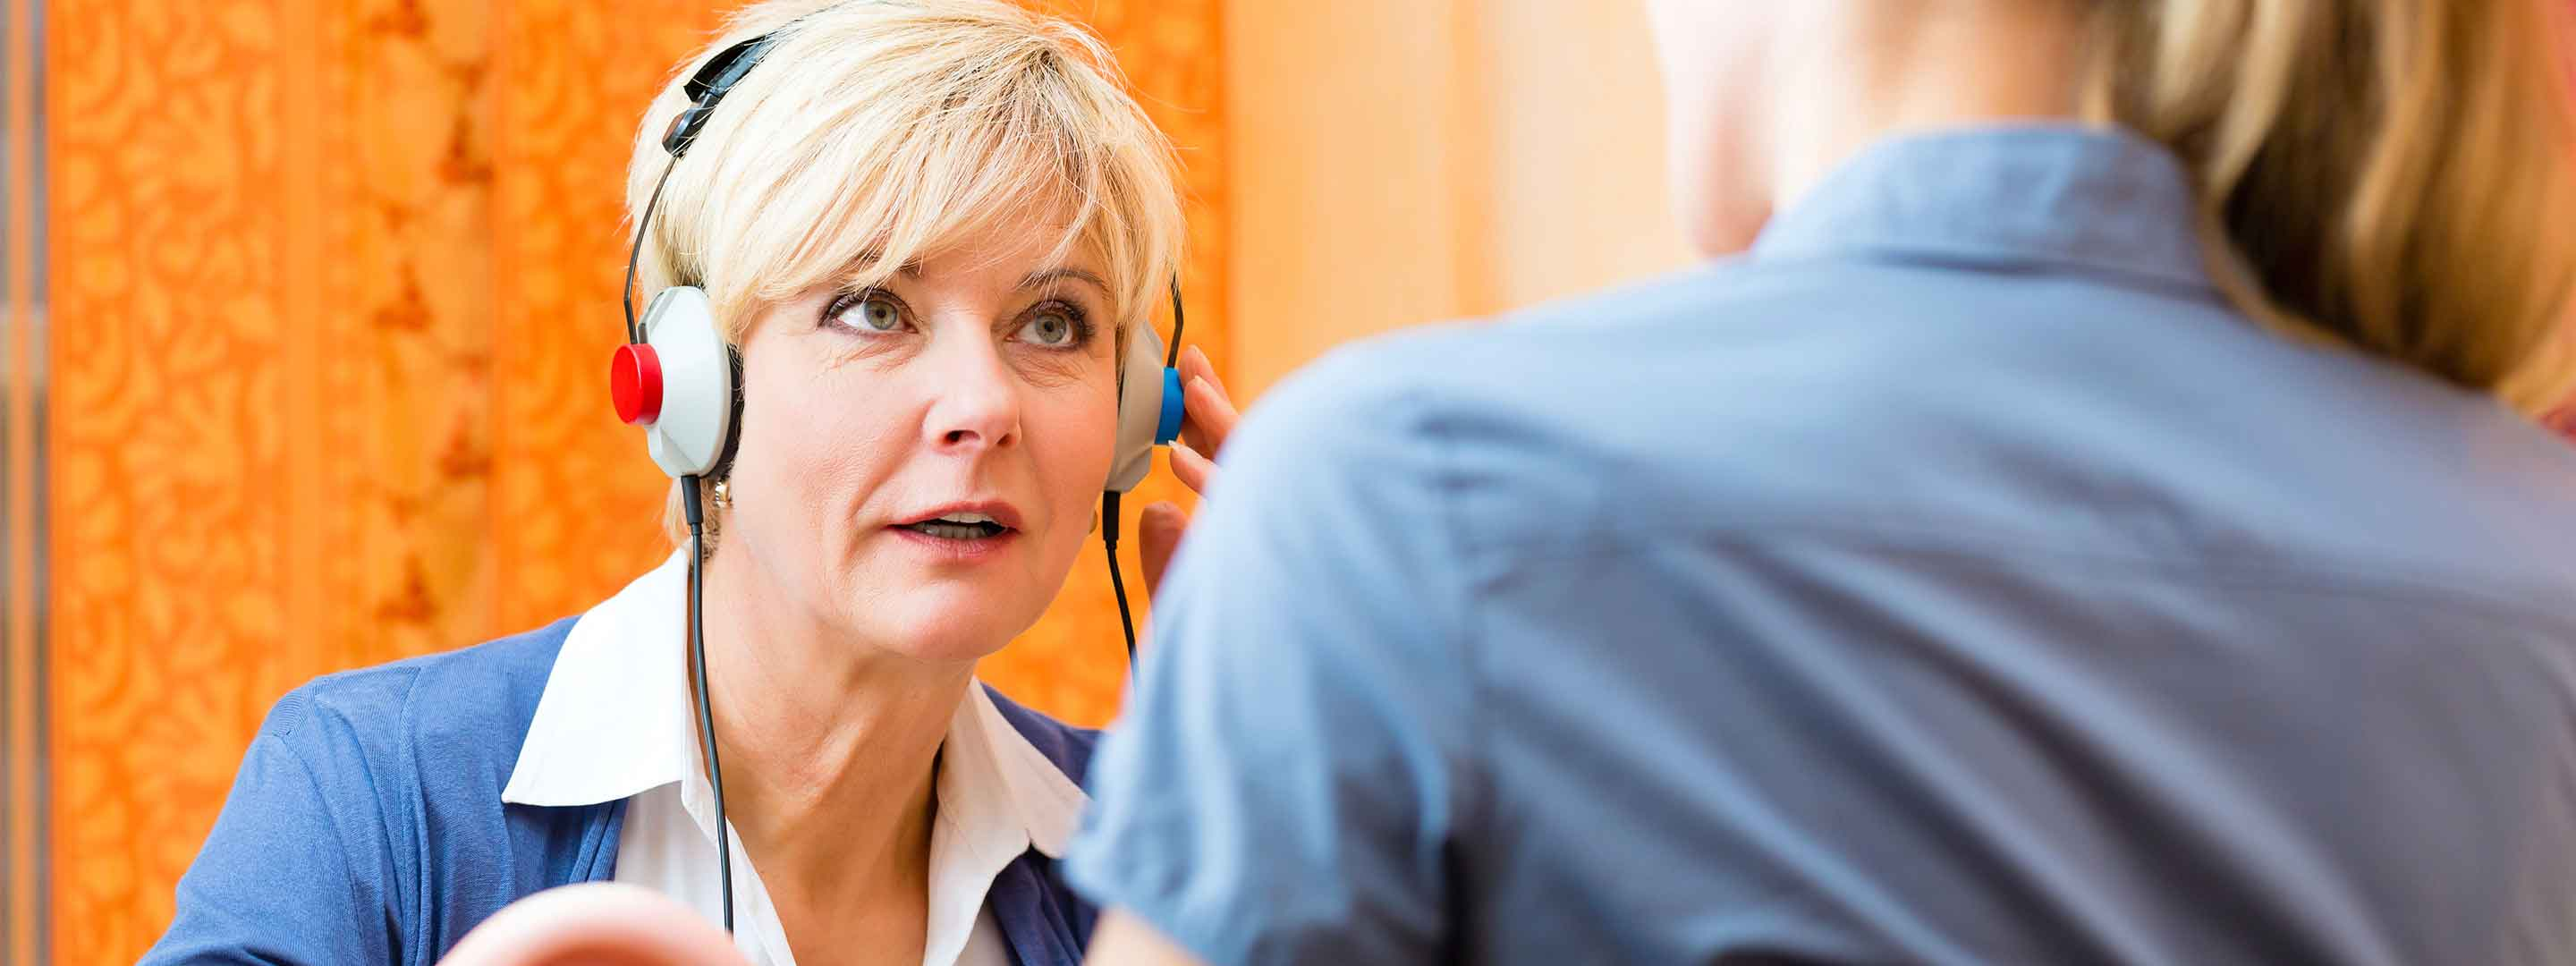 How Do I Know If I Really Need a Hearing Test?